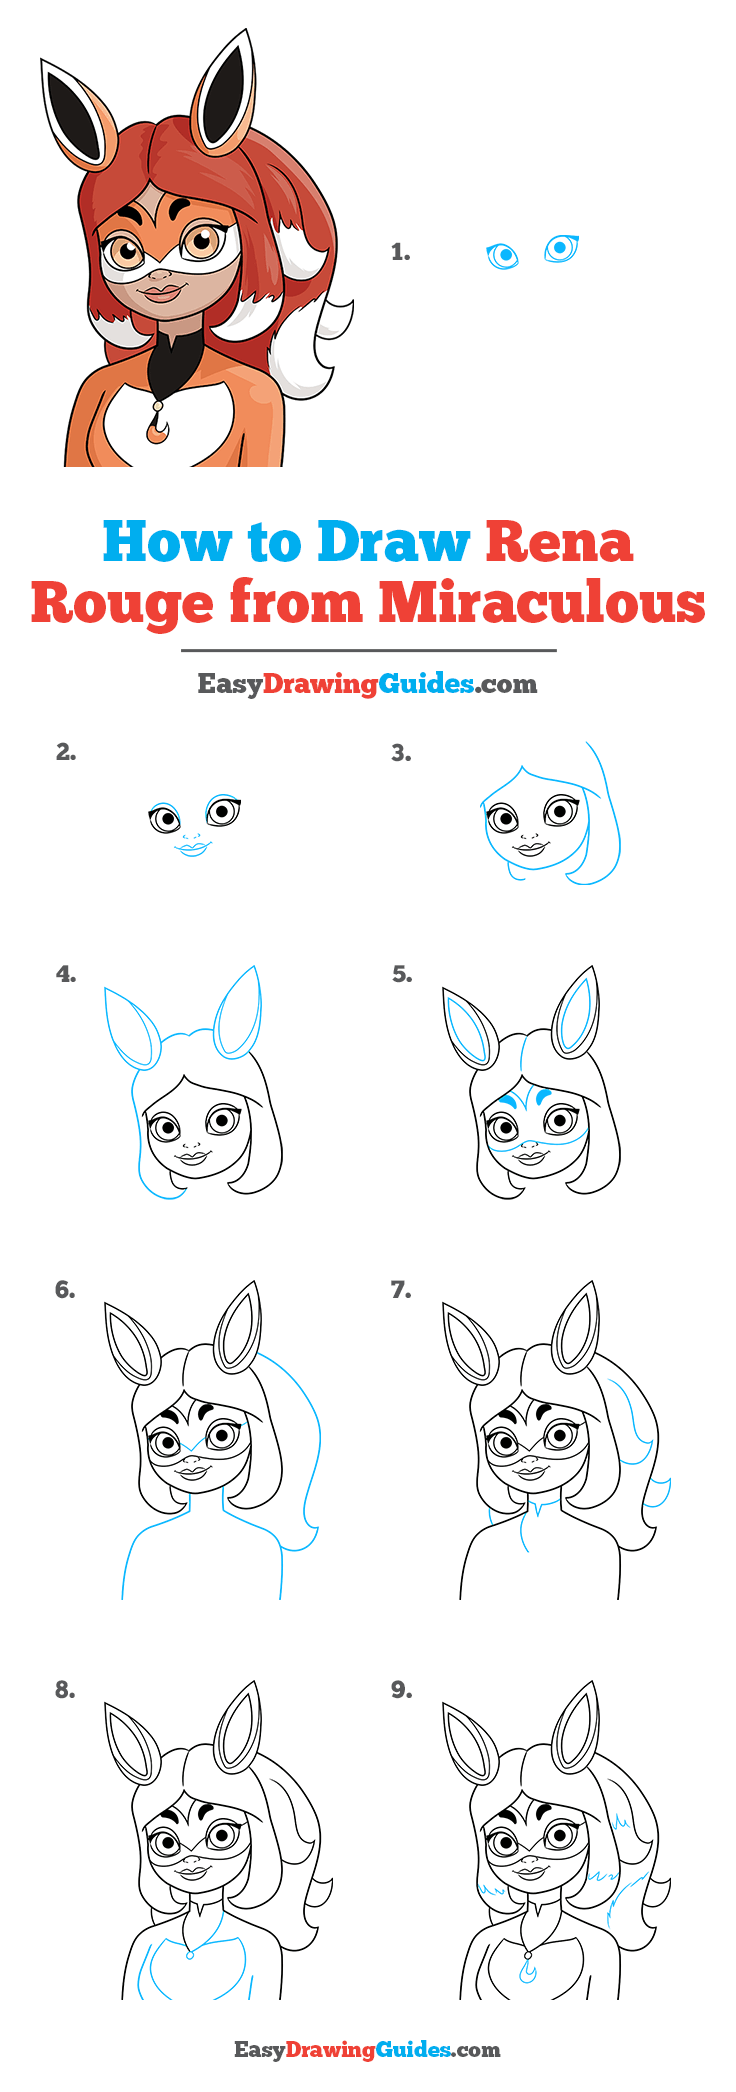 how to draw rena rouge from miraculous step by step tutorial image